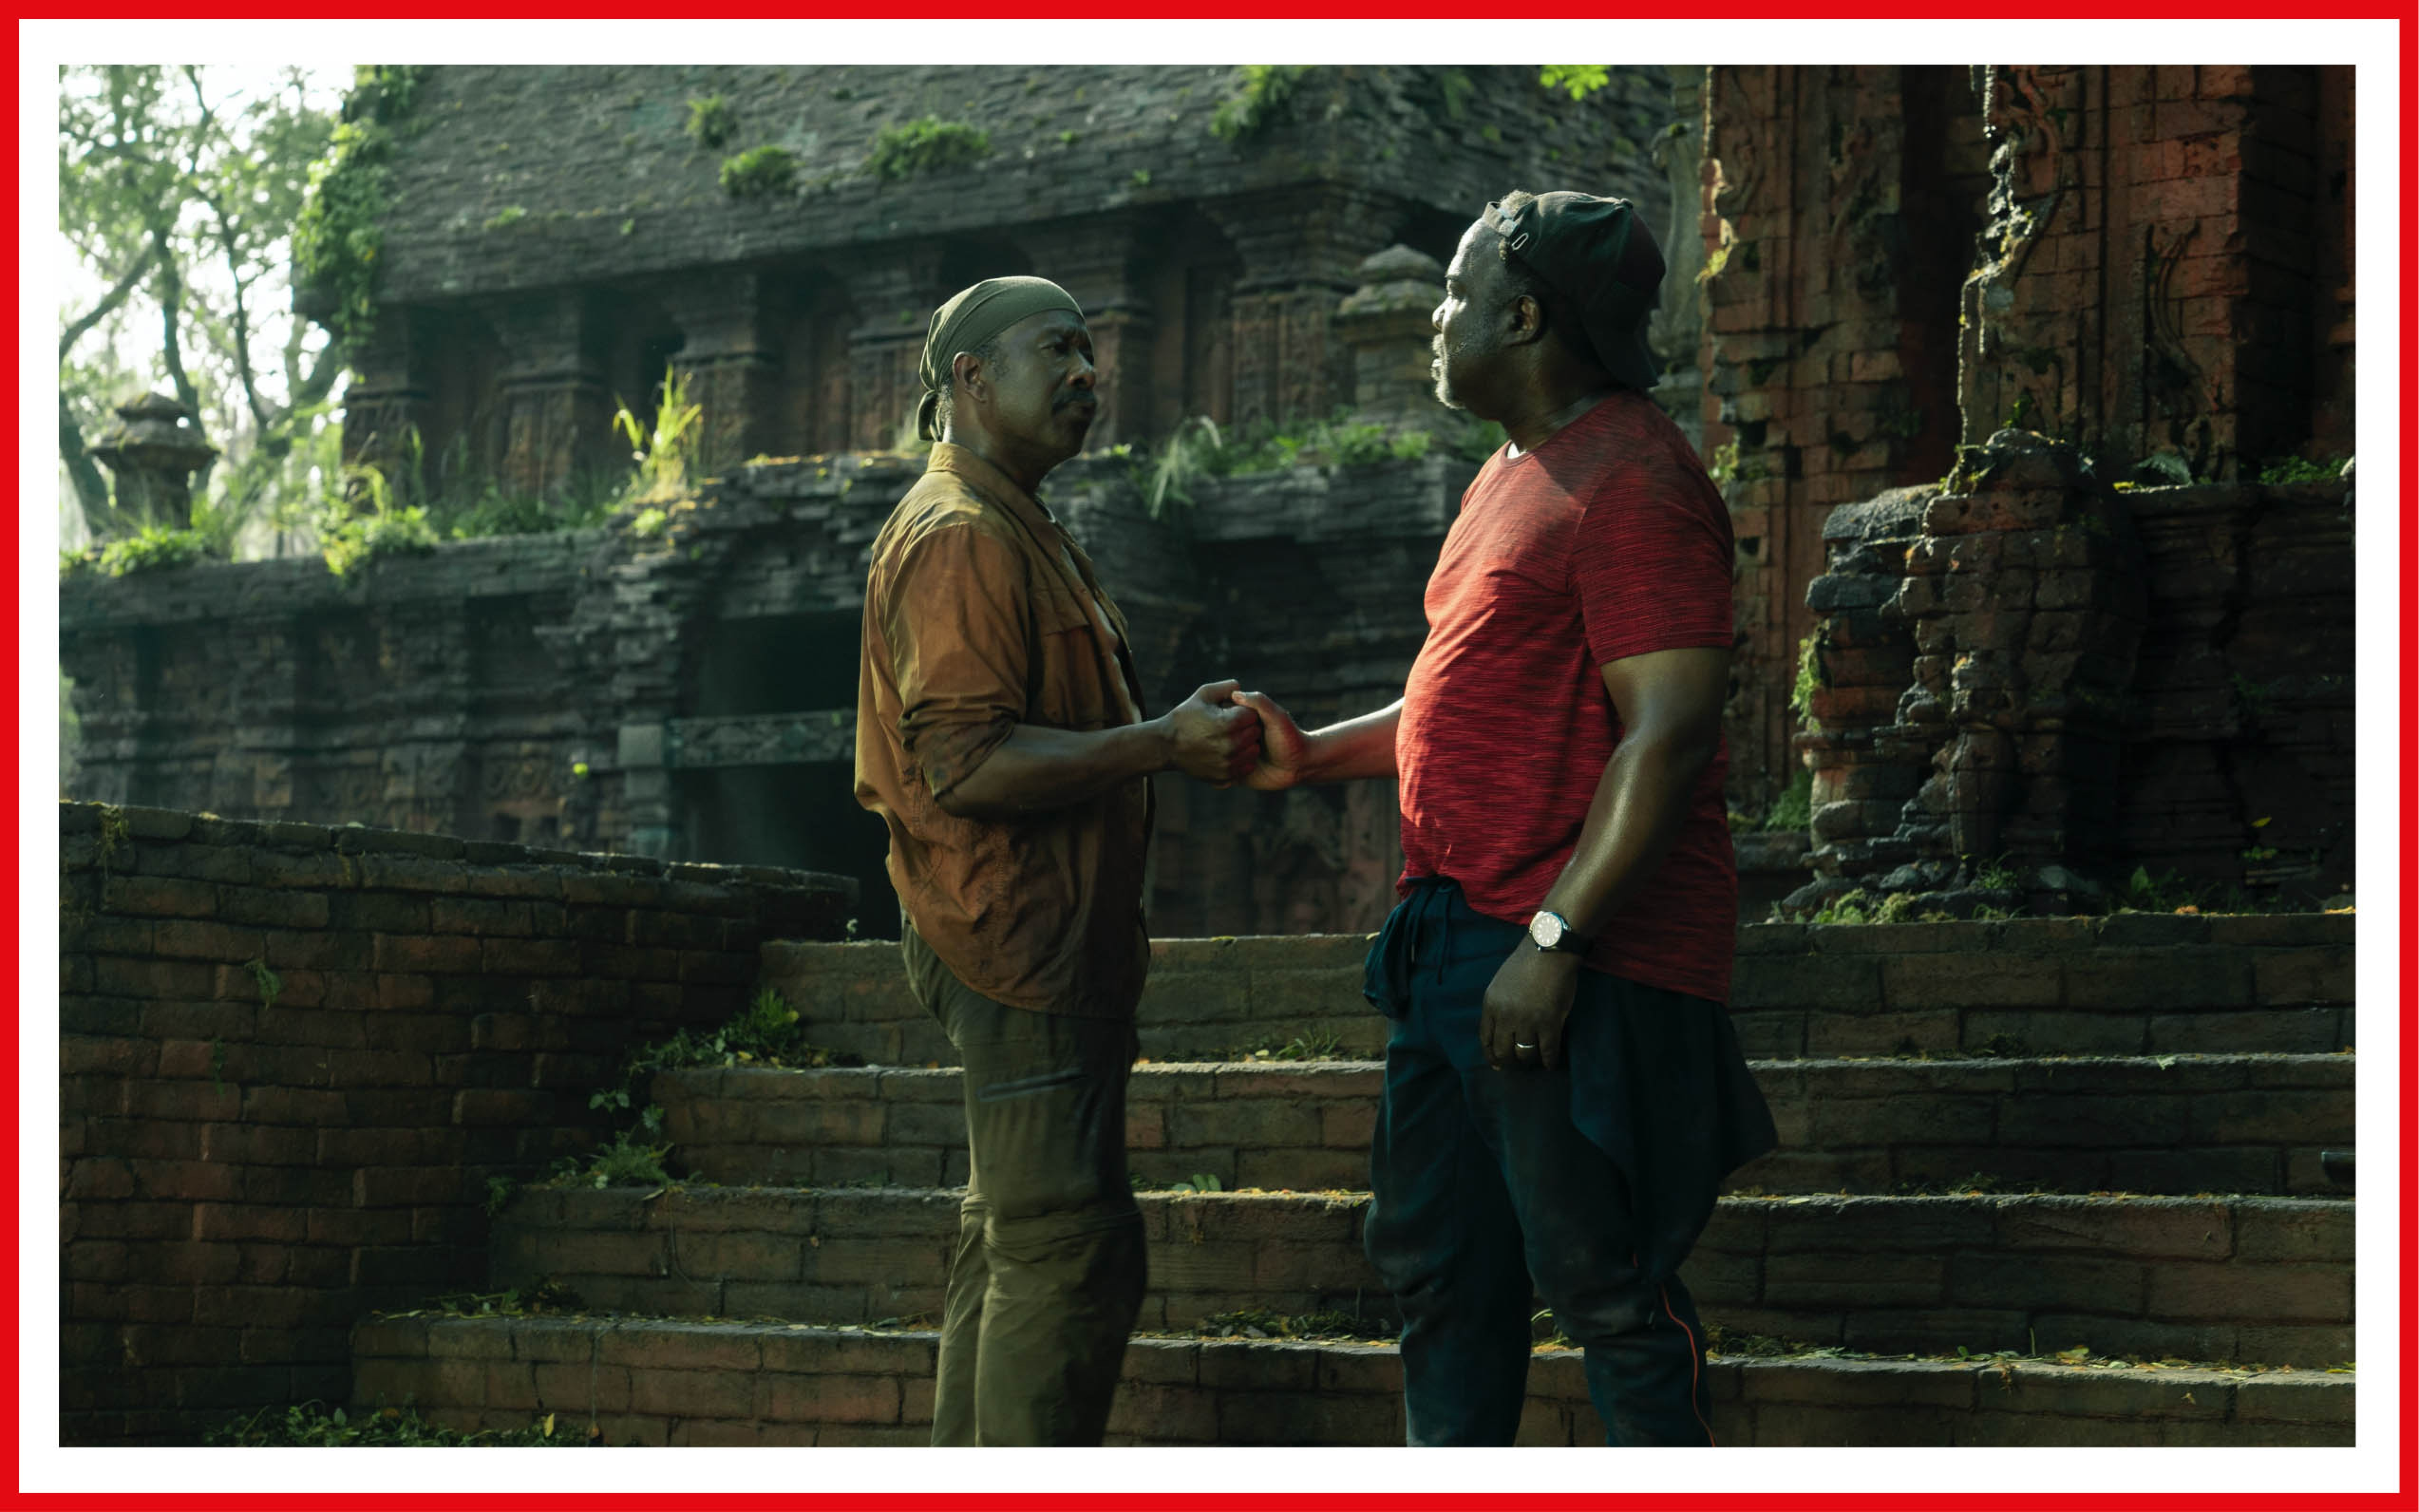 Looking worn from their characters' quest, Clarke Peters and Isiah Whitlock Jr. dap in front of stone ruins